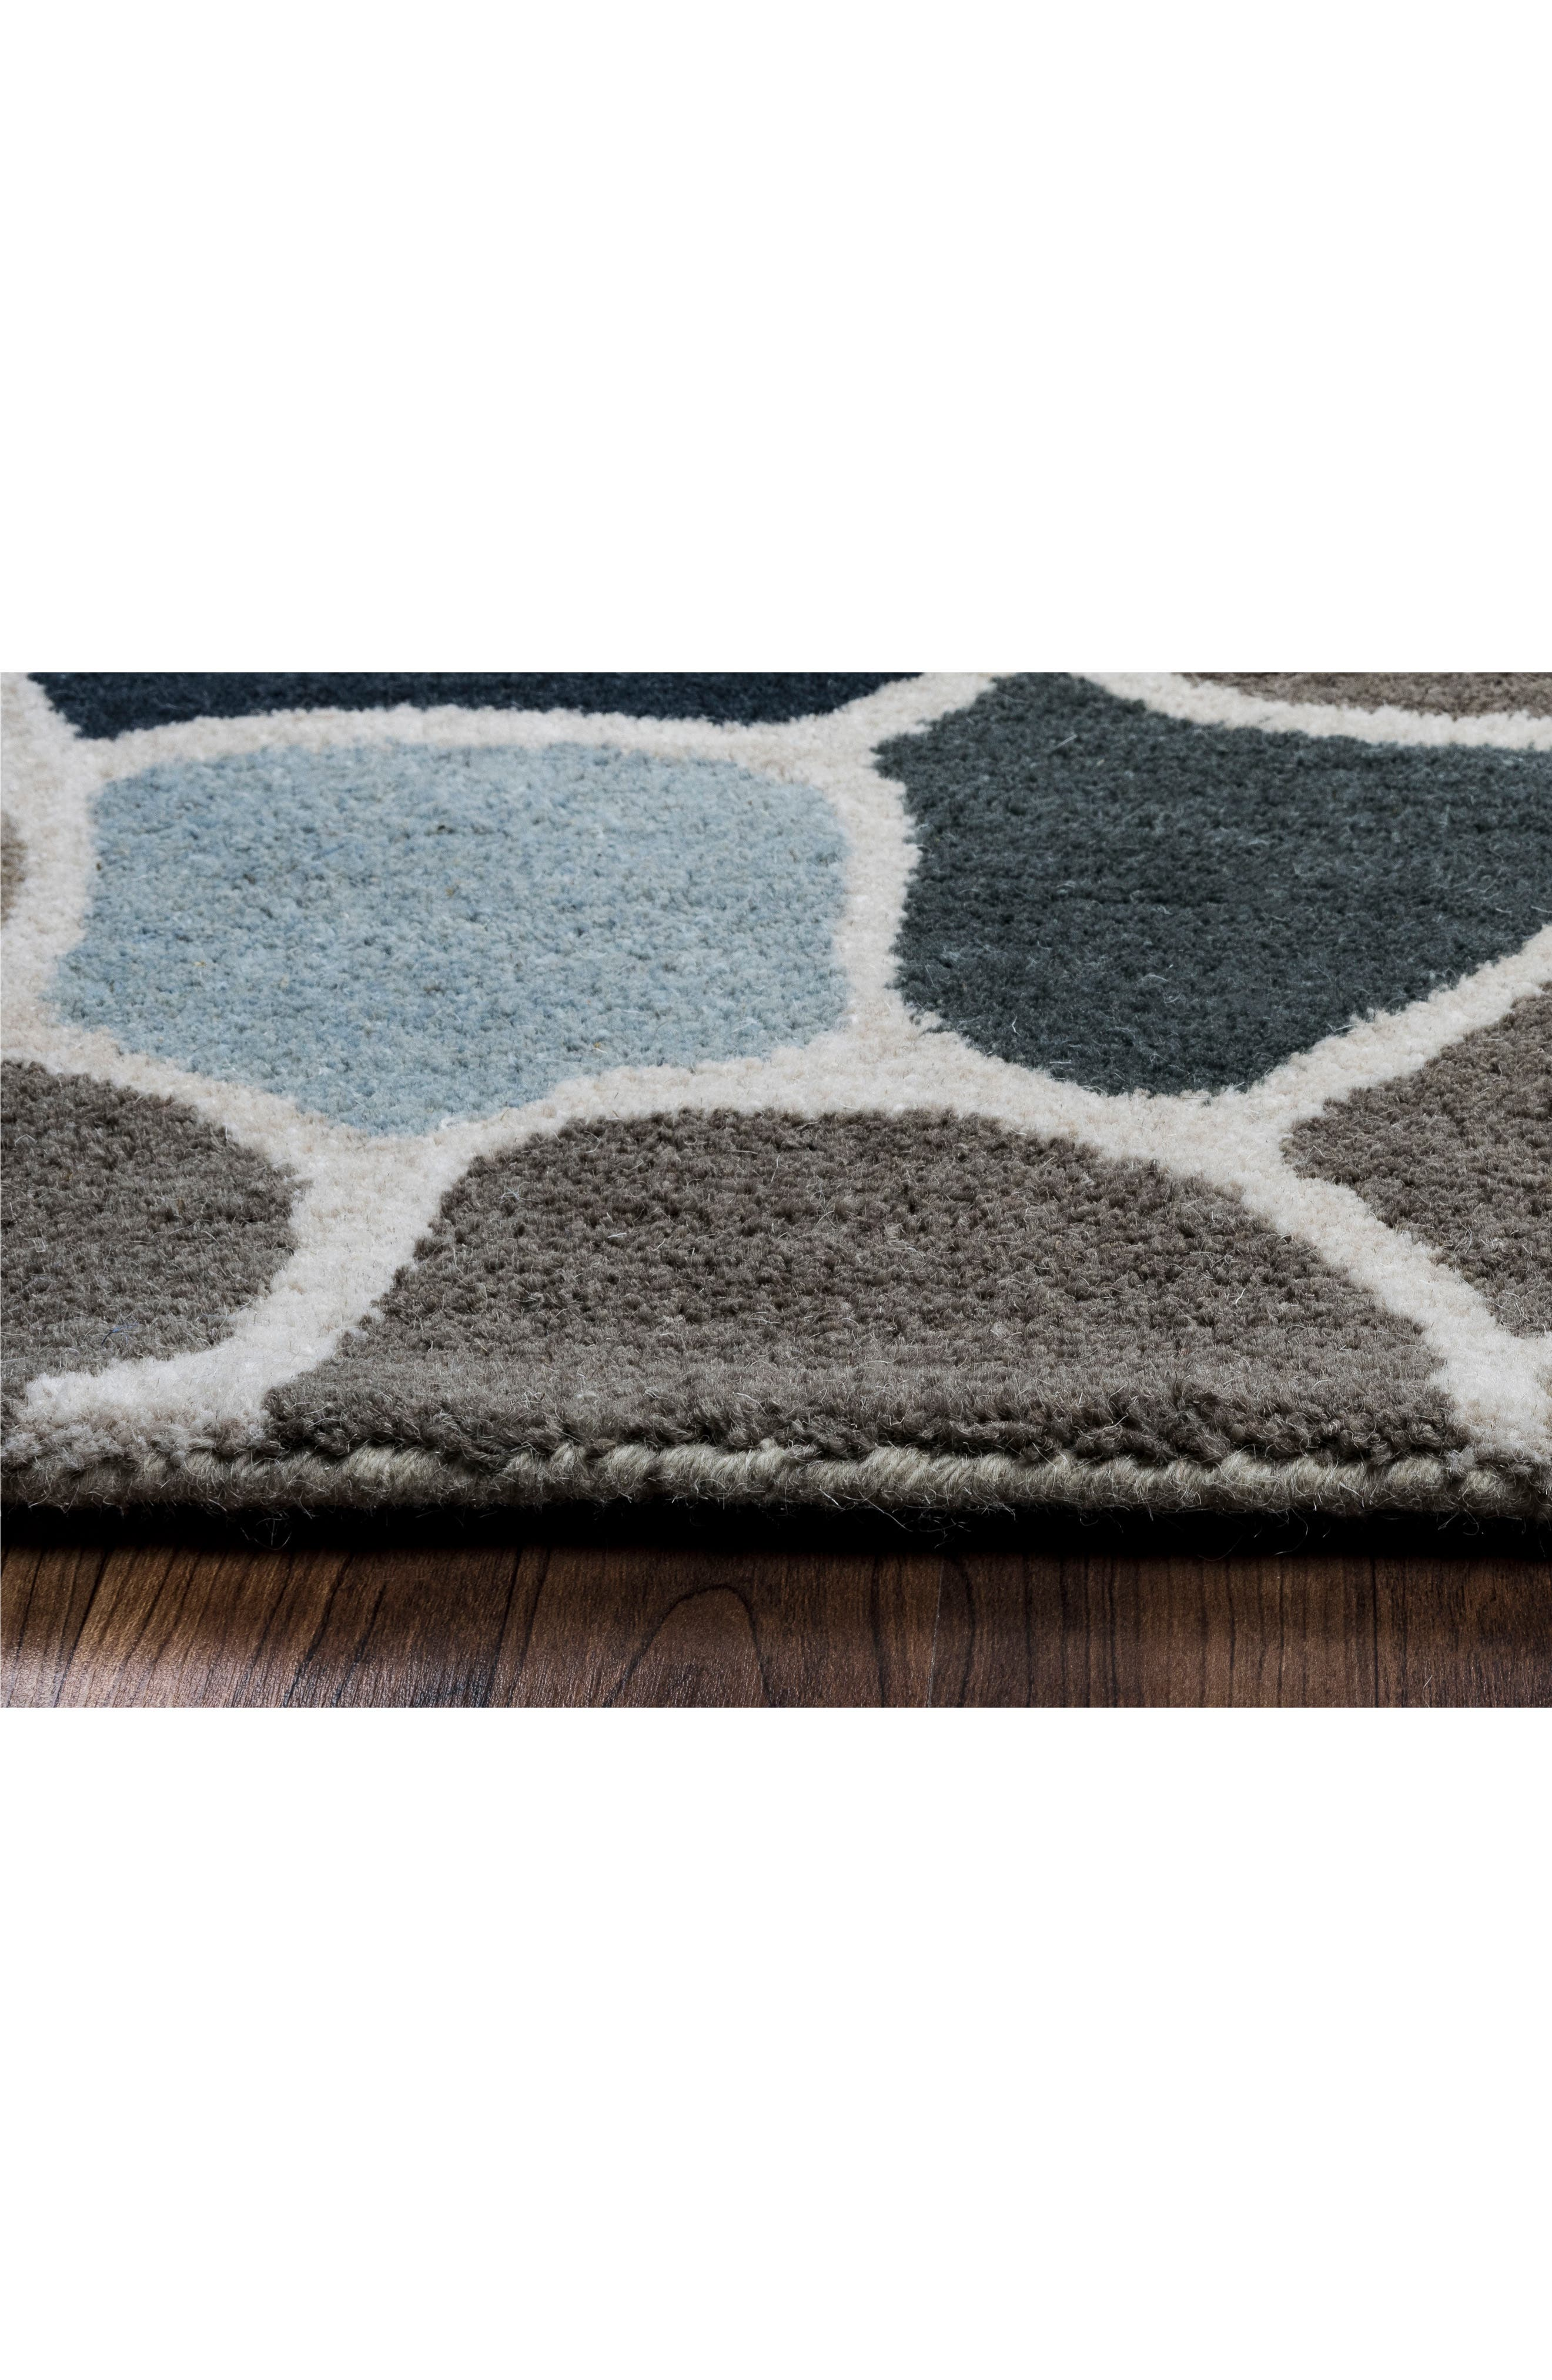 Cobble Geo Hand Tufted Wool Area Rug,                             Alternate thumbnail 3, color,                             Grey/ Blue